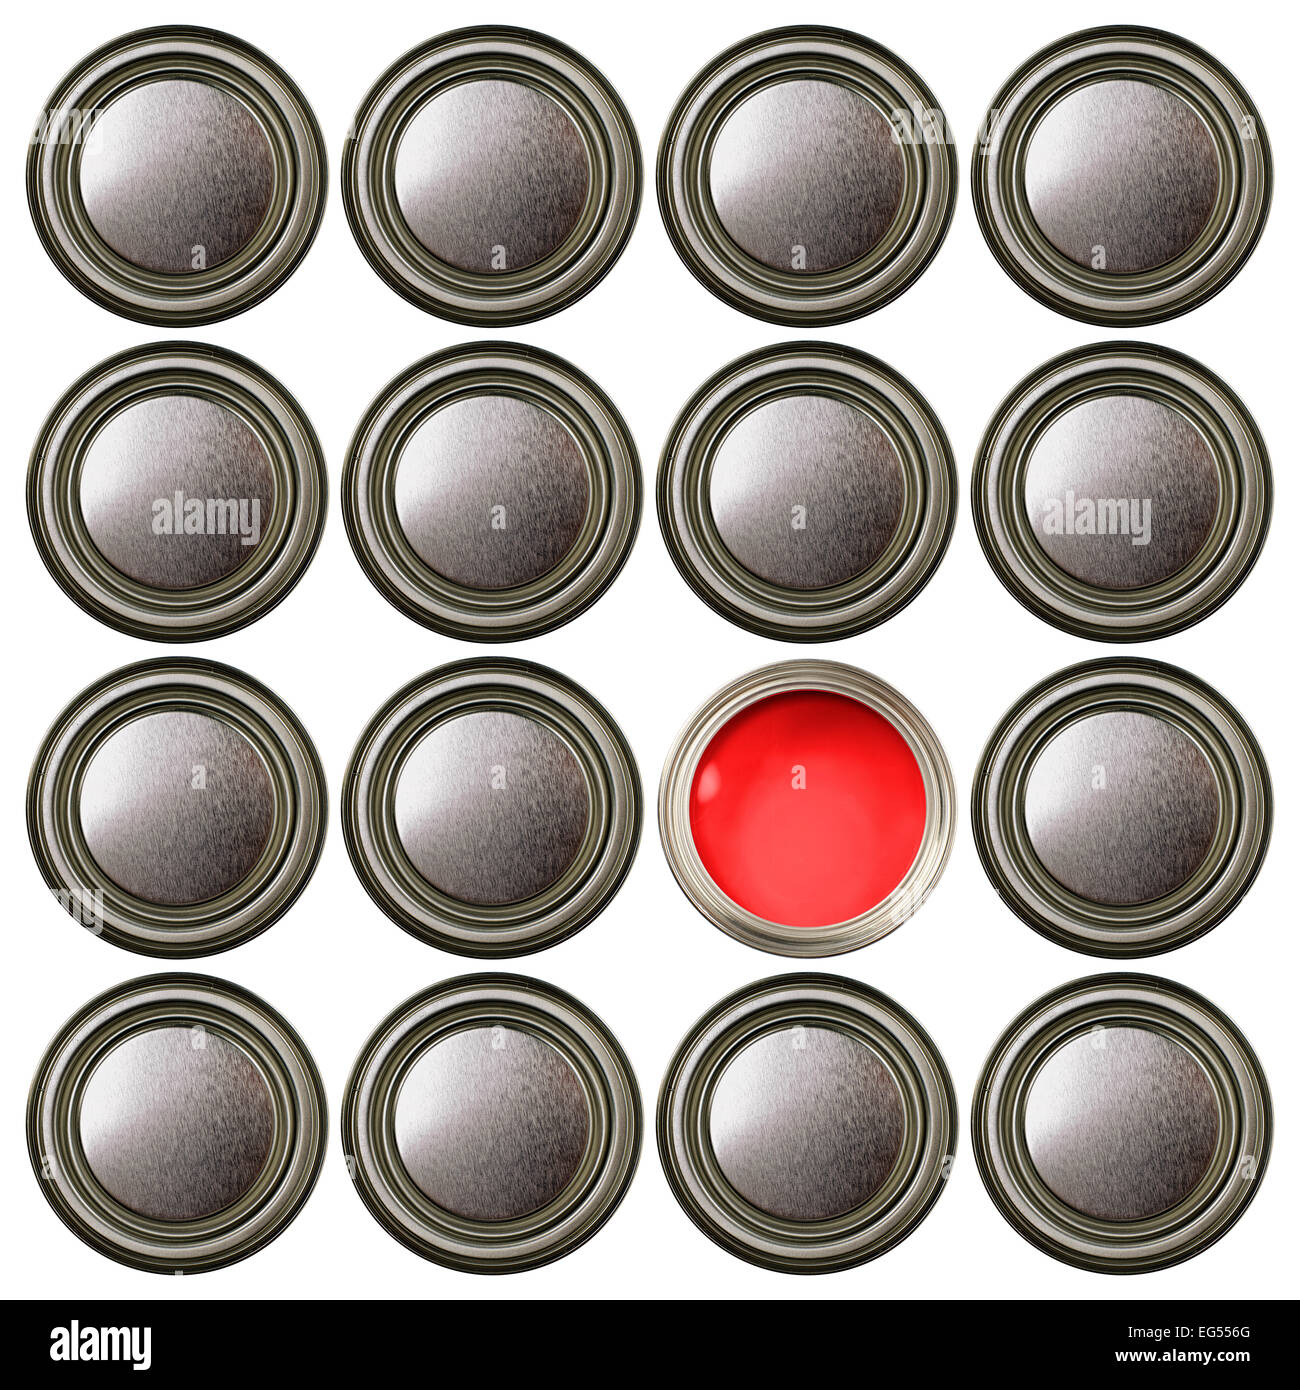 closed paint cans pots tins with one open showing red paint - Stock Image